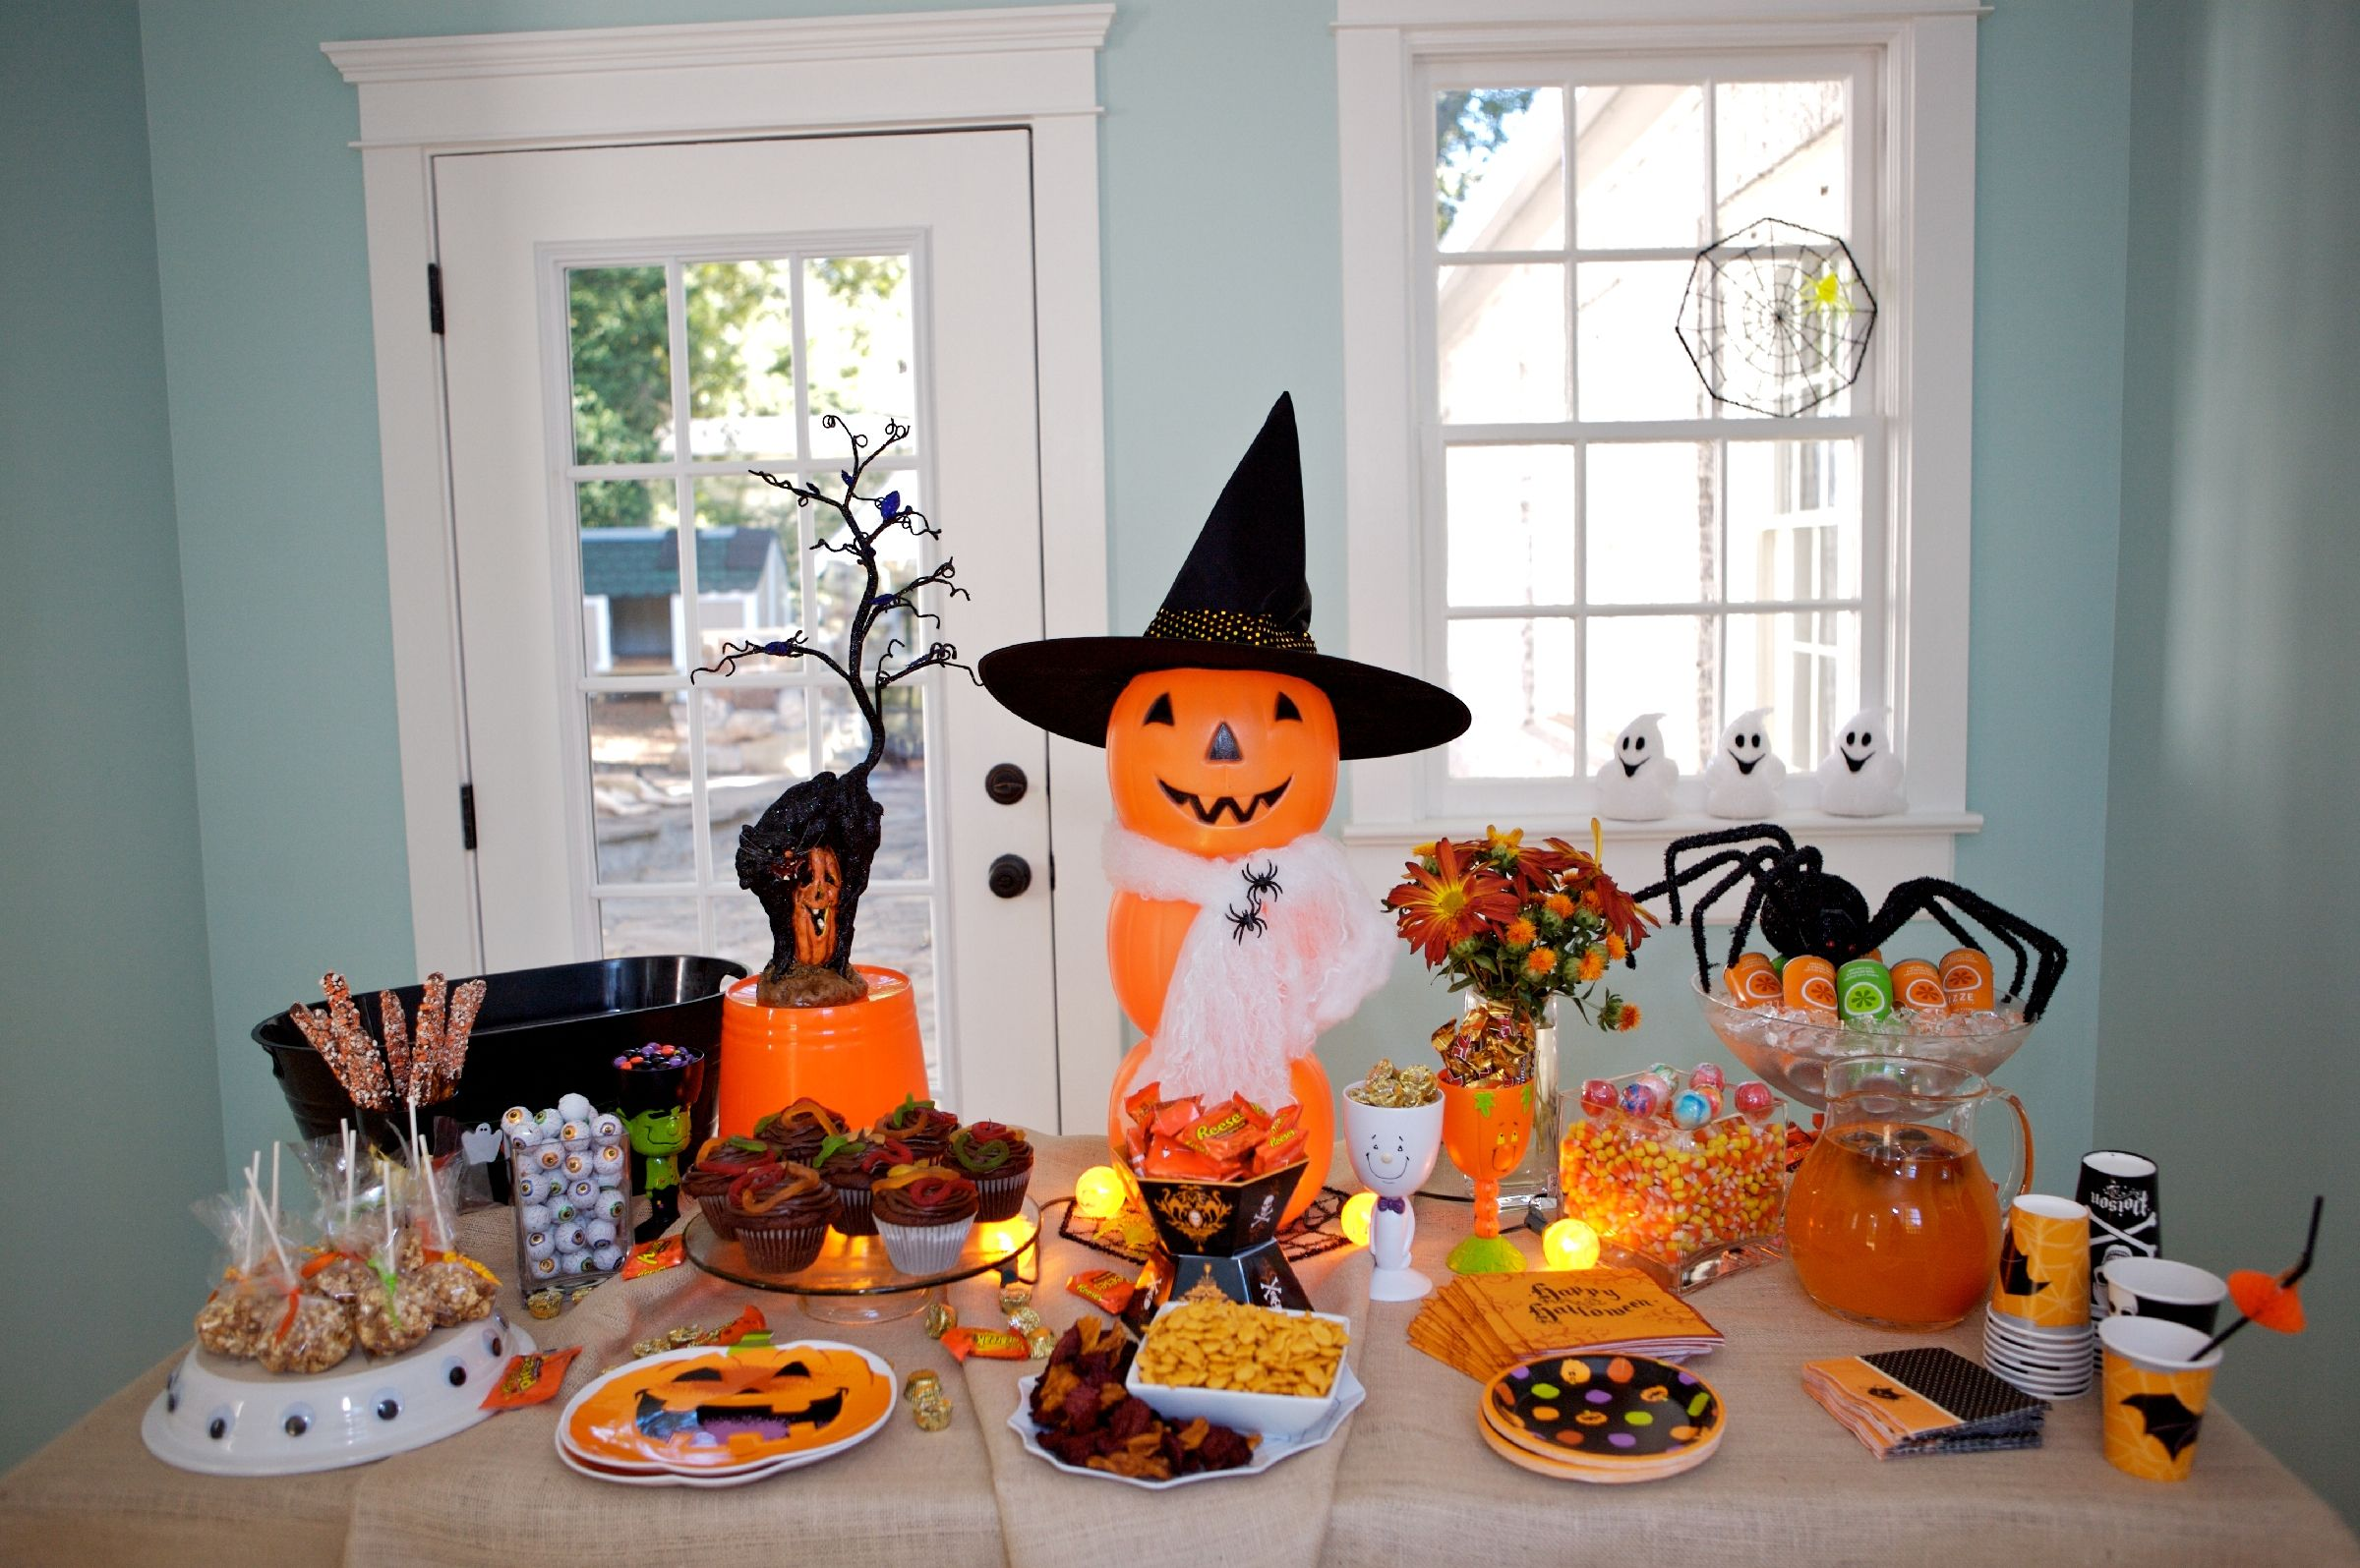 halloween ideas - Halloween Table Decorations Ideas